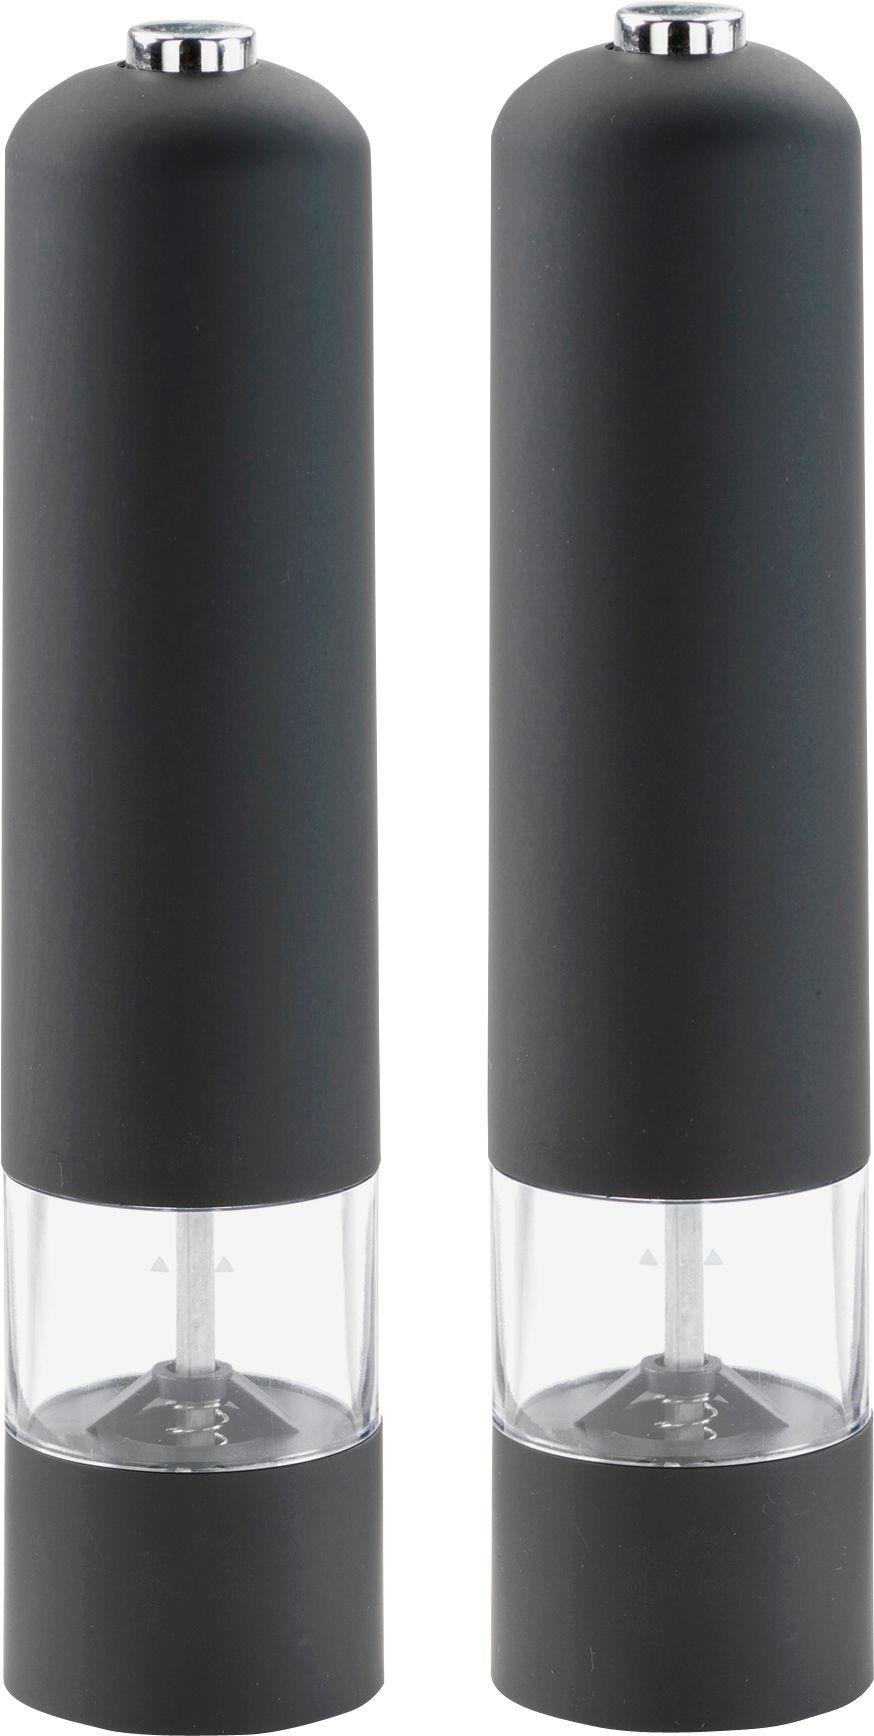 Image of Collection - Electronic Salt and Pepper Mills